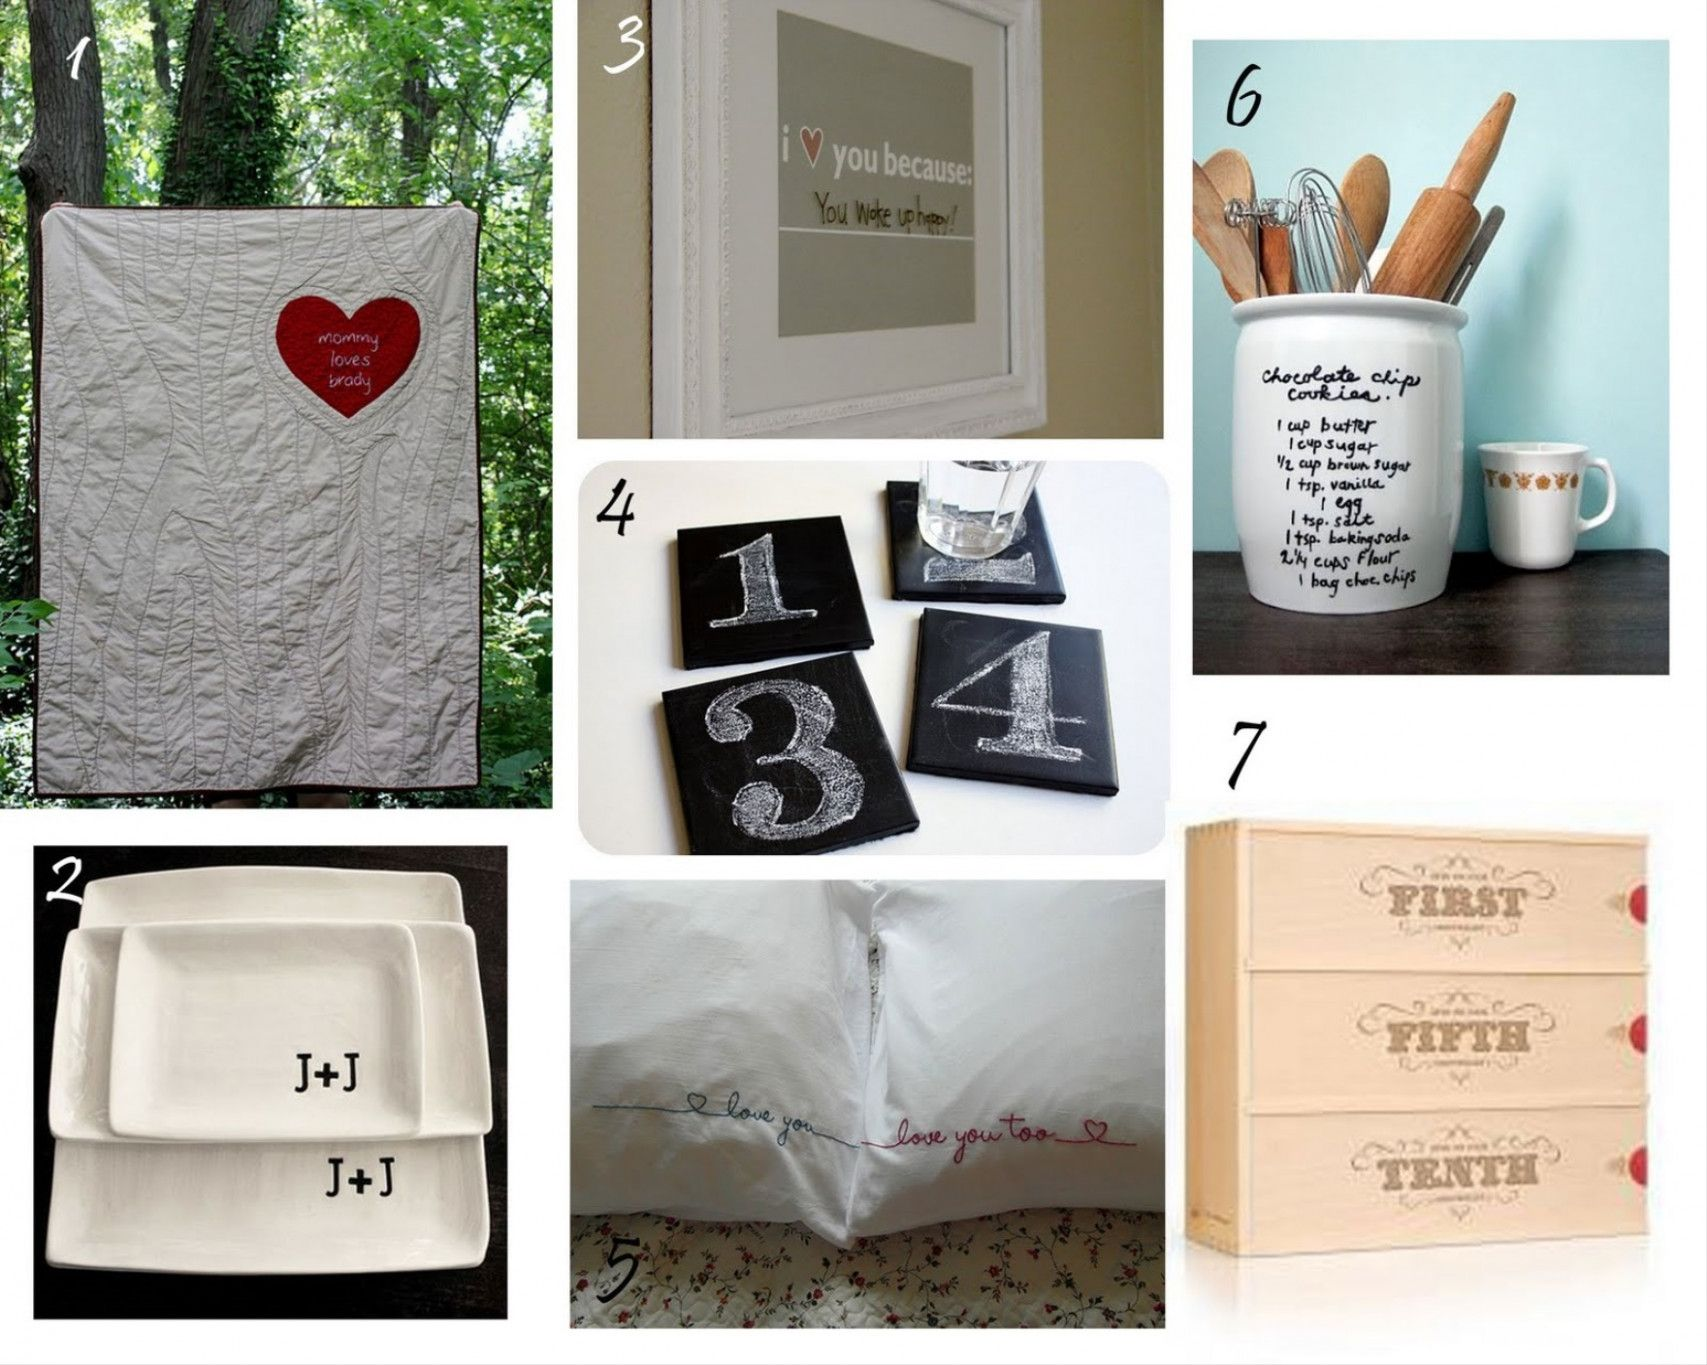 Good Wedding Gifts For Brother: Wedding Gifts For Brother Ideas